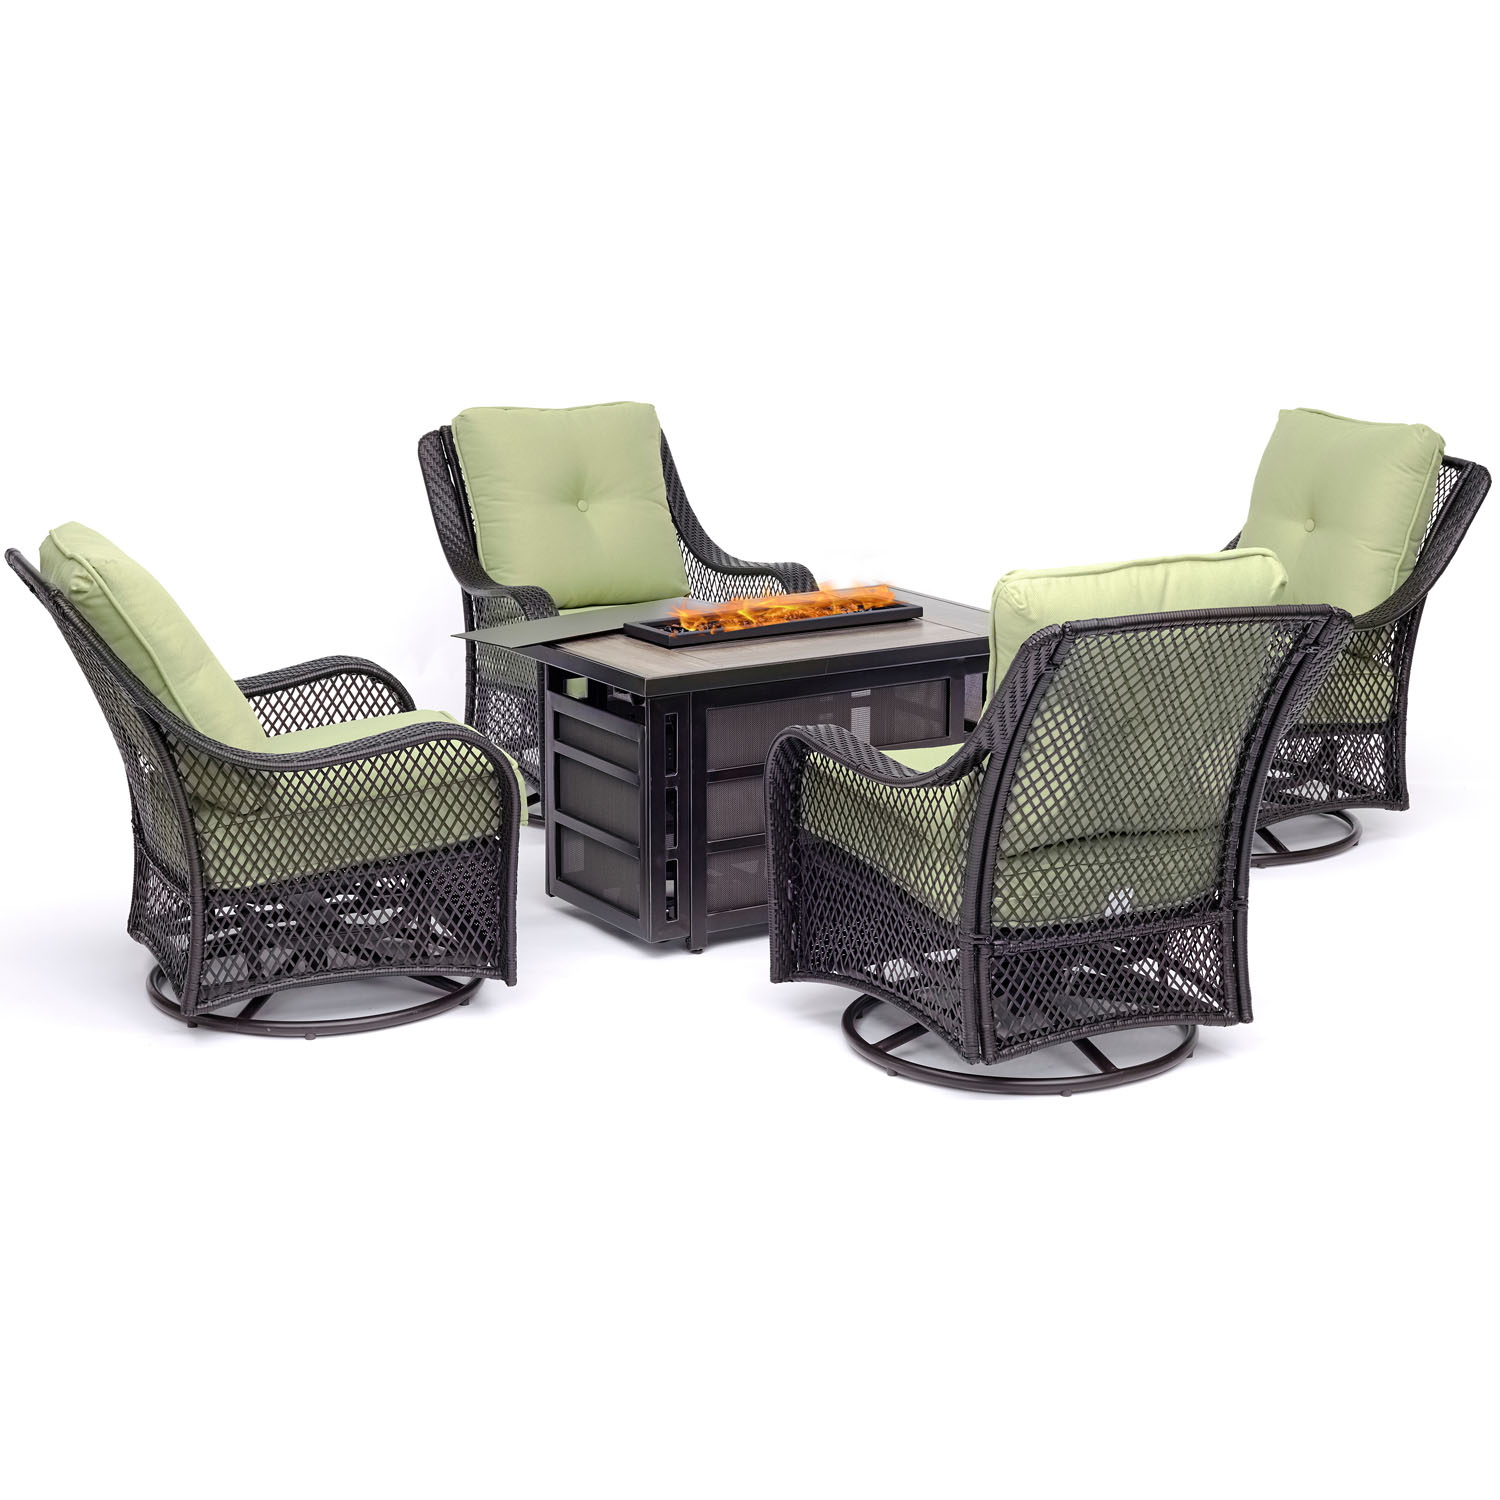 Hanover Orleans 5-Piece Firepit Chat Set with a 30,000 BTU Firepit Table and 4 Woven Swivel Gliders in Avocado... by Hanover